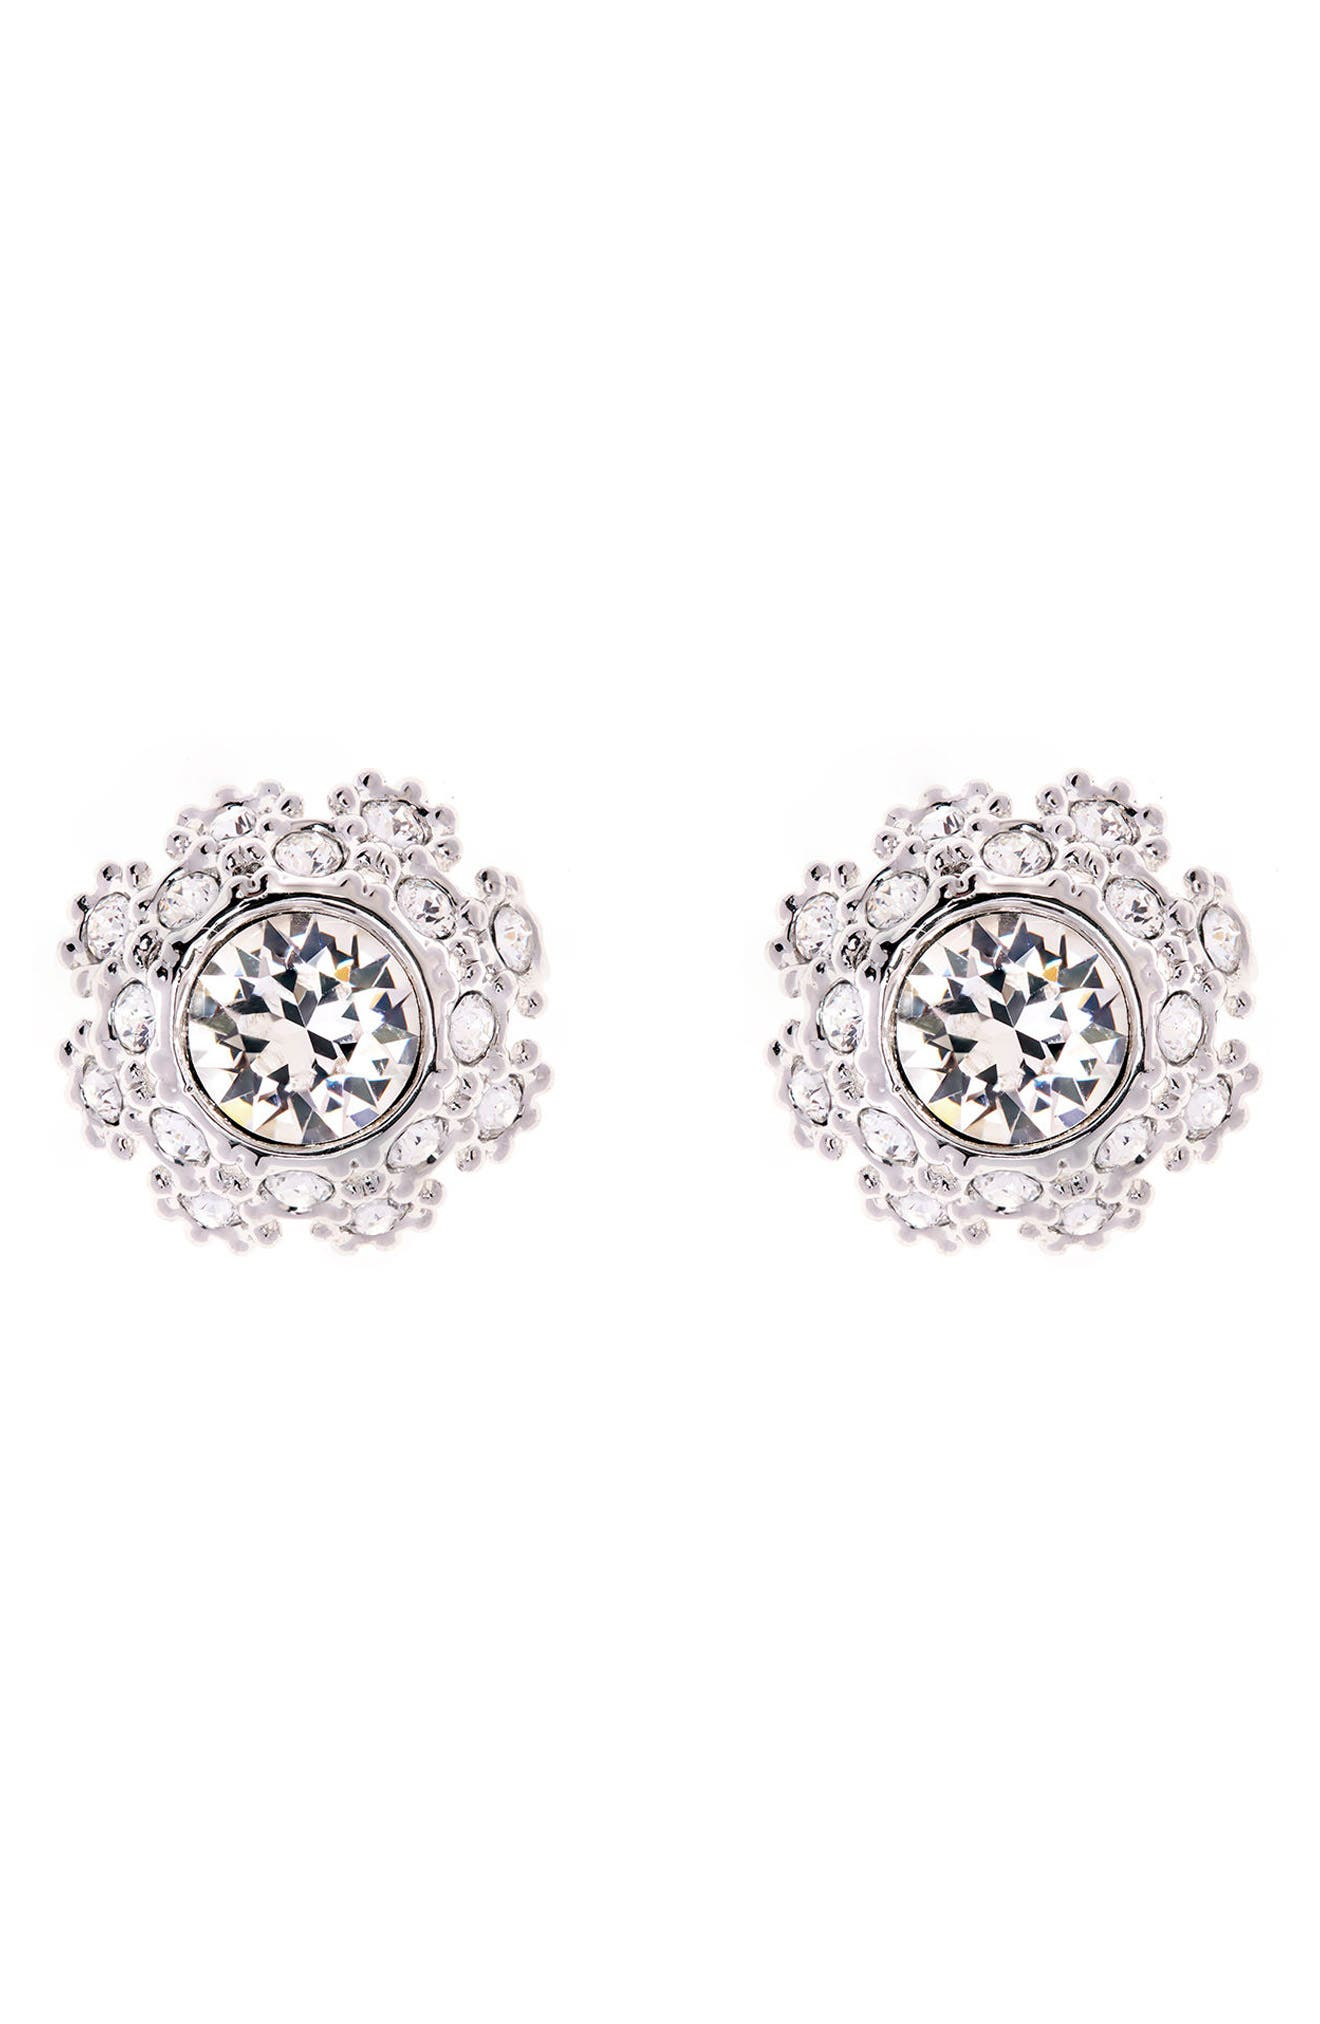 Crystal Daisy Lace Stud Earrings,                             Main thumbnail 2, color,